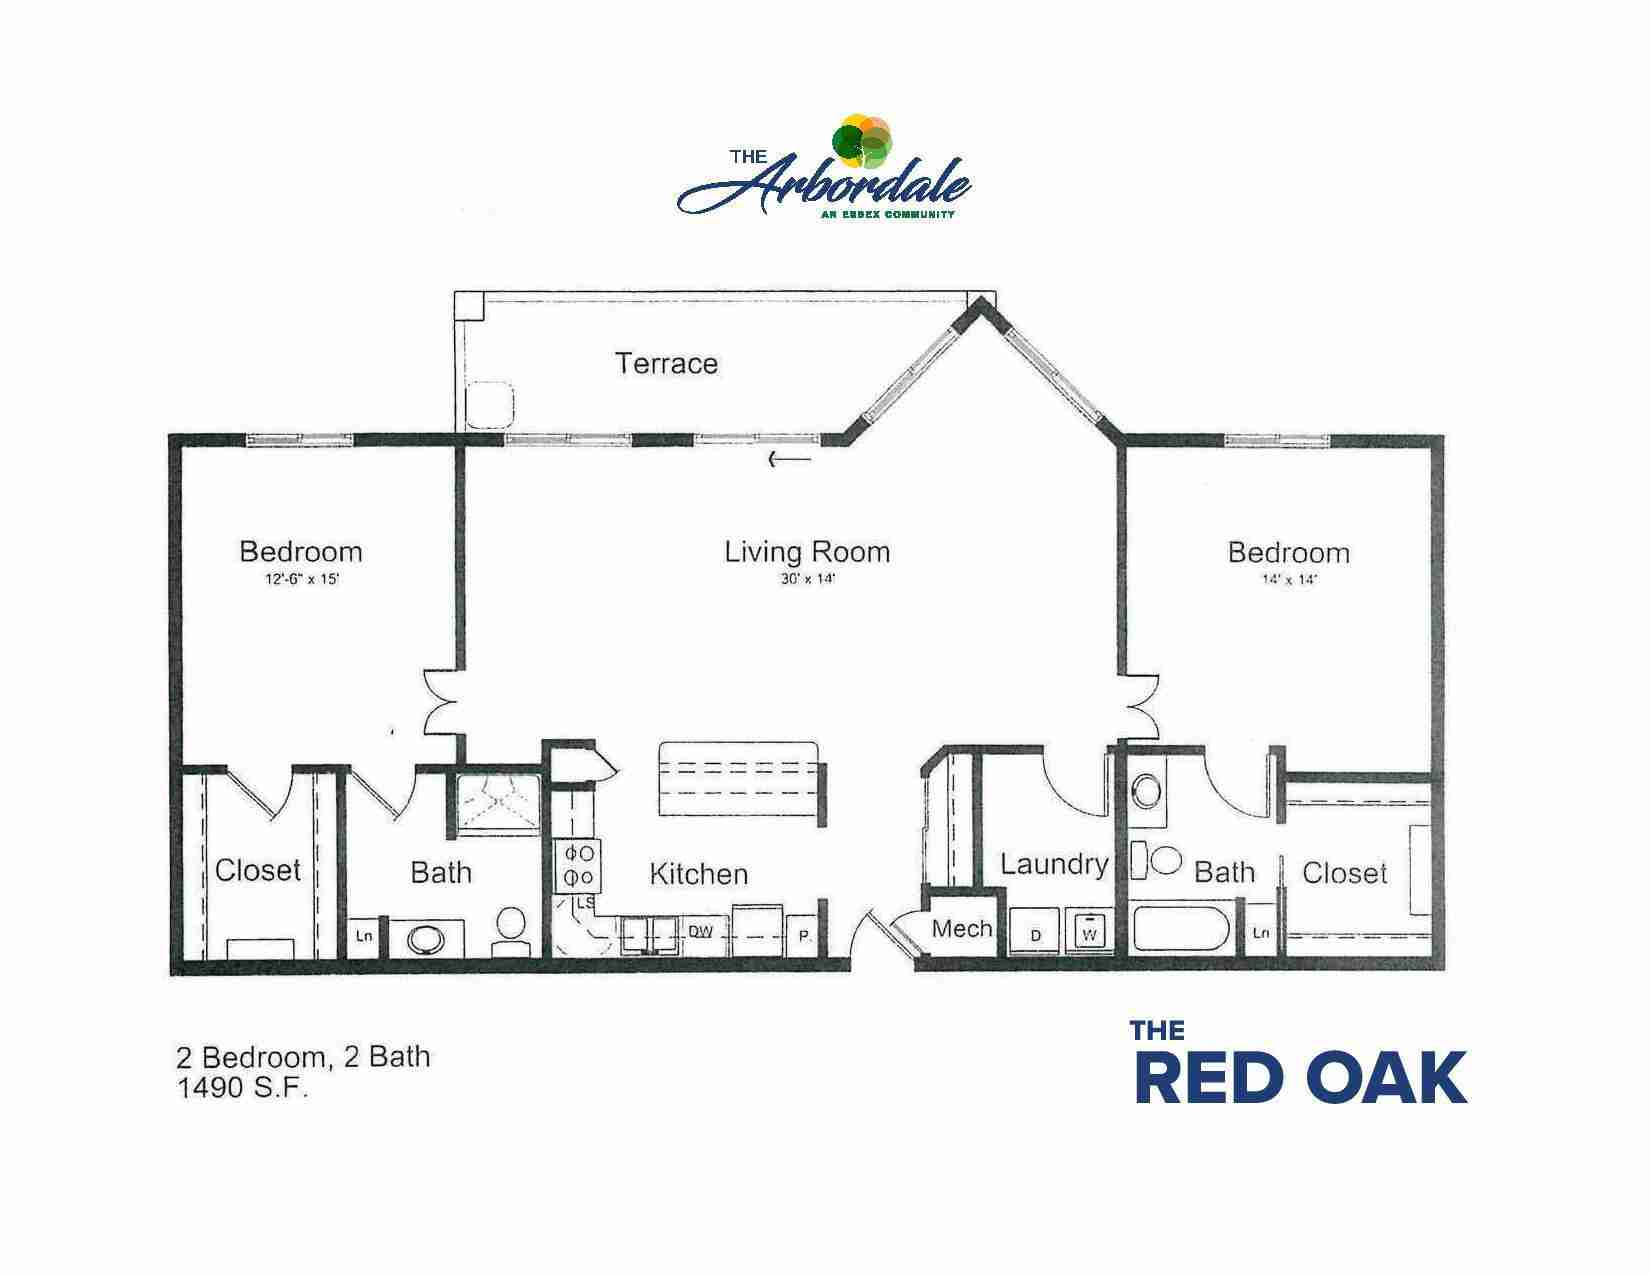 the red oak floor plan, 2 bedroom, 2 bath, 1490 sq ft